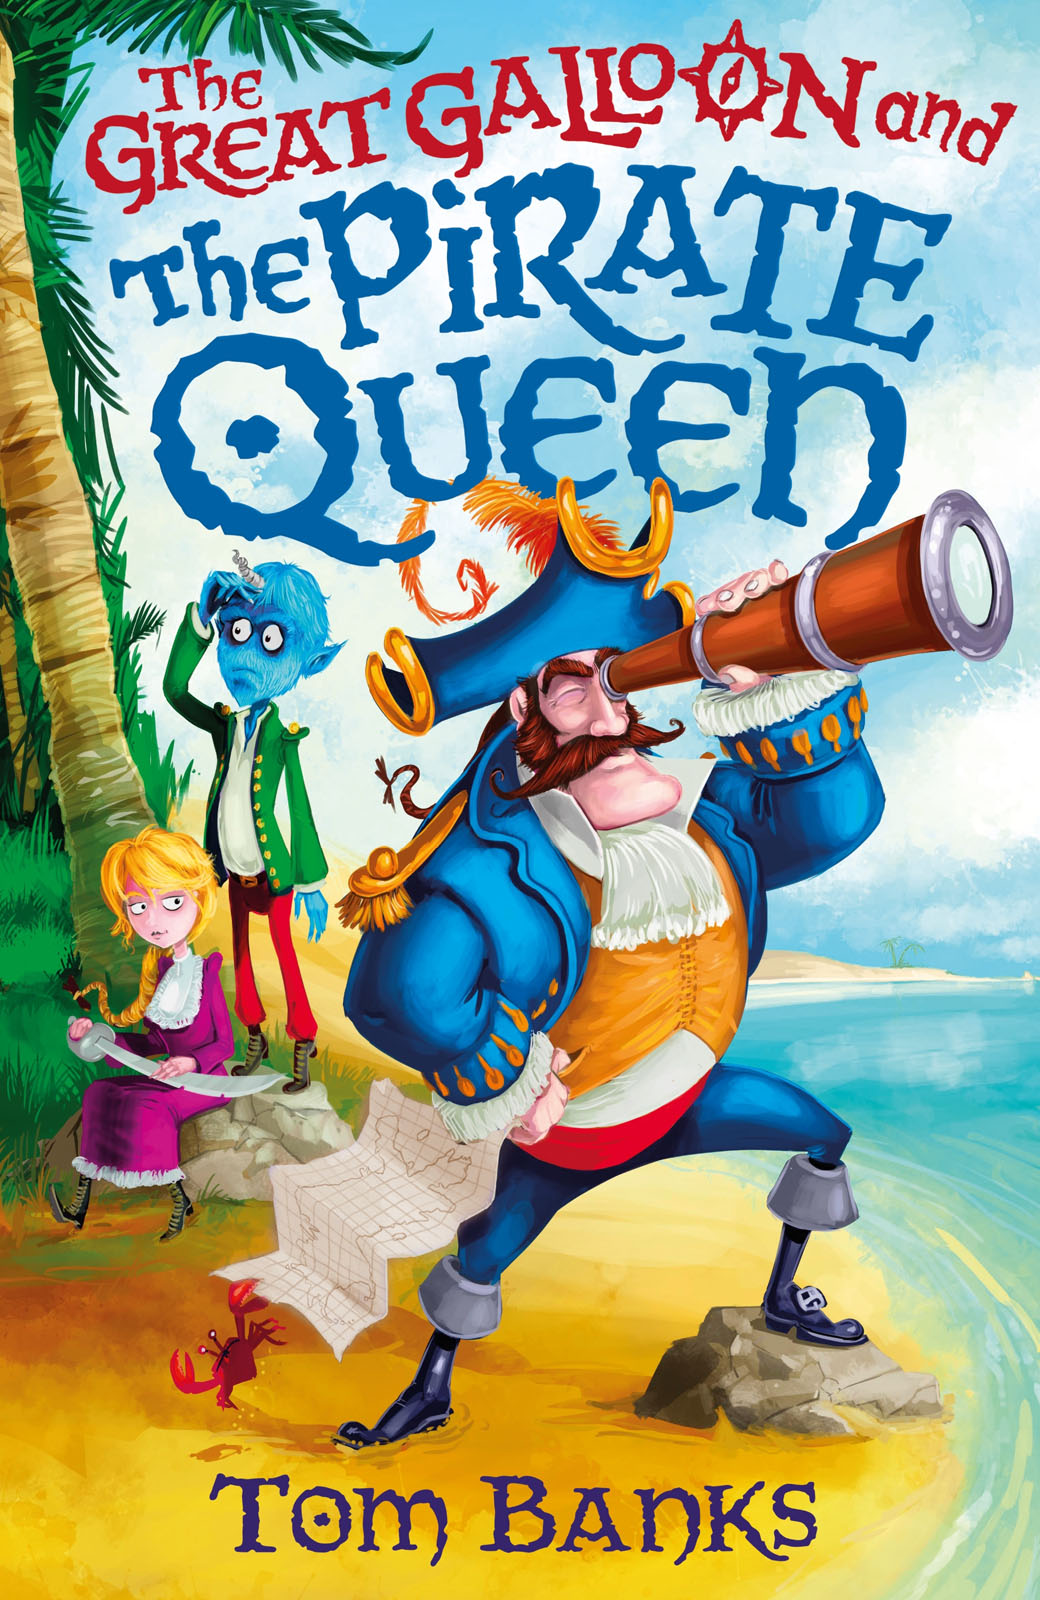 The Great Galloon and the Pirate Queen (2015) by Tom Banks